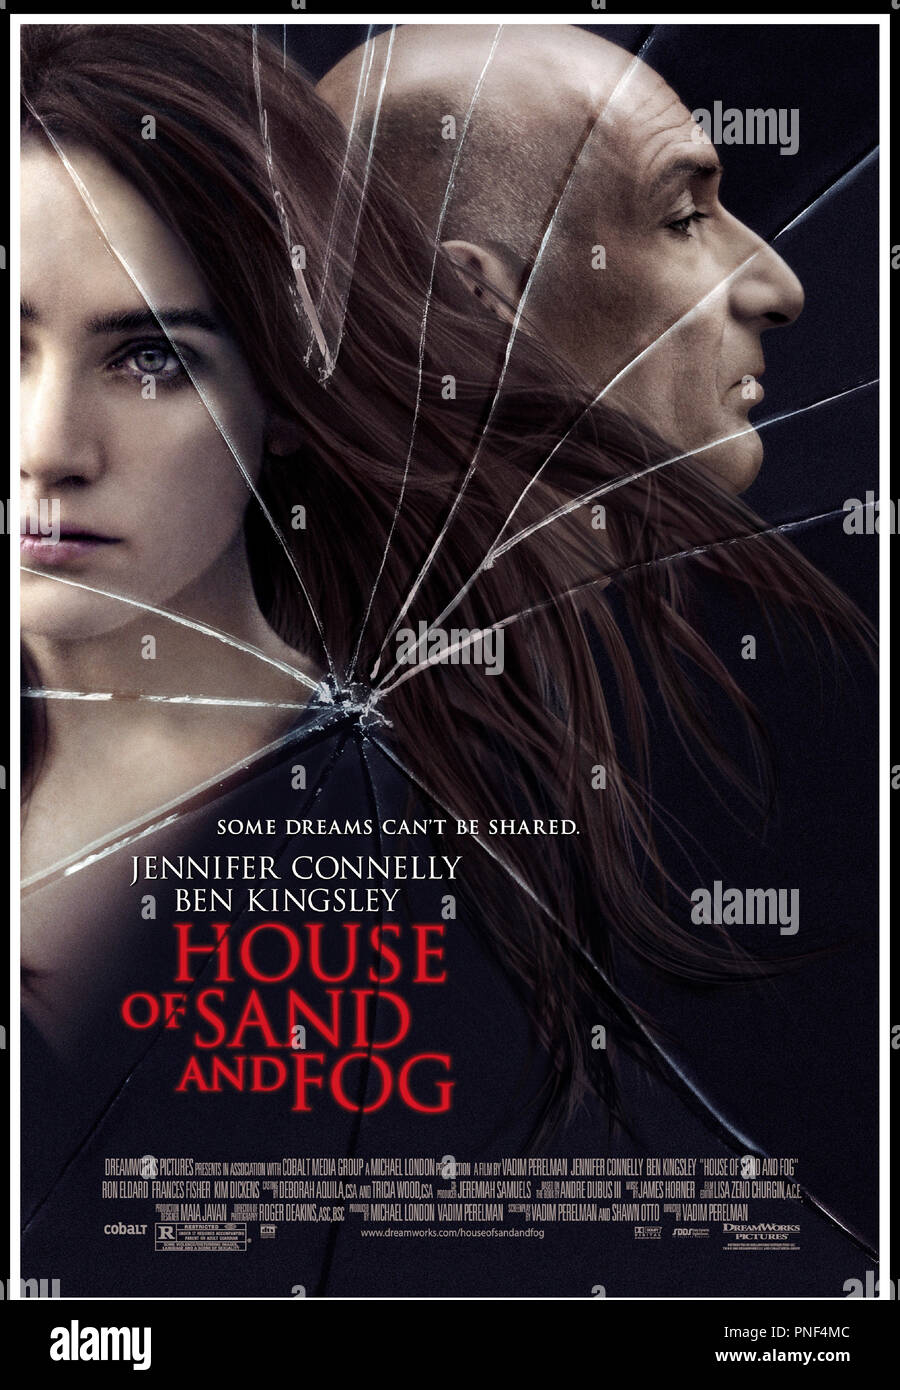 house of sand and fog full movie